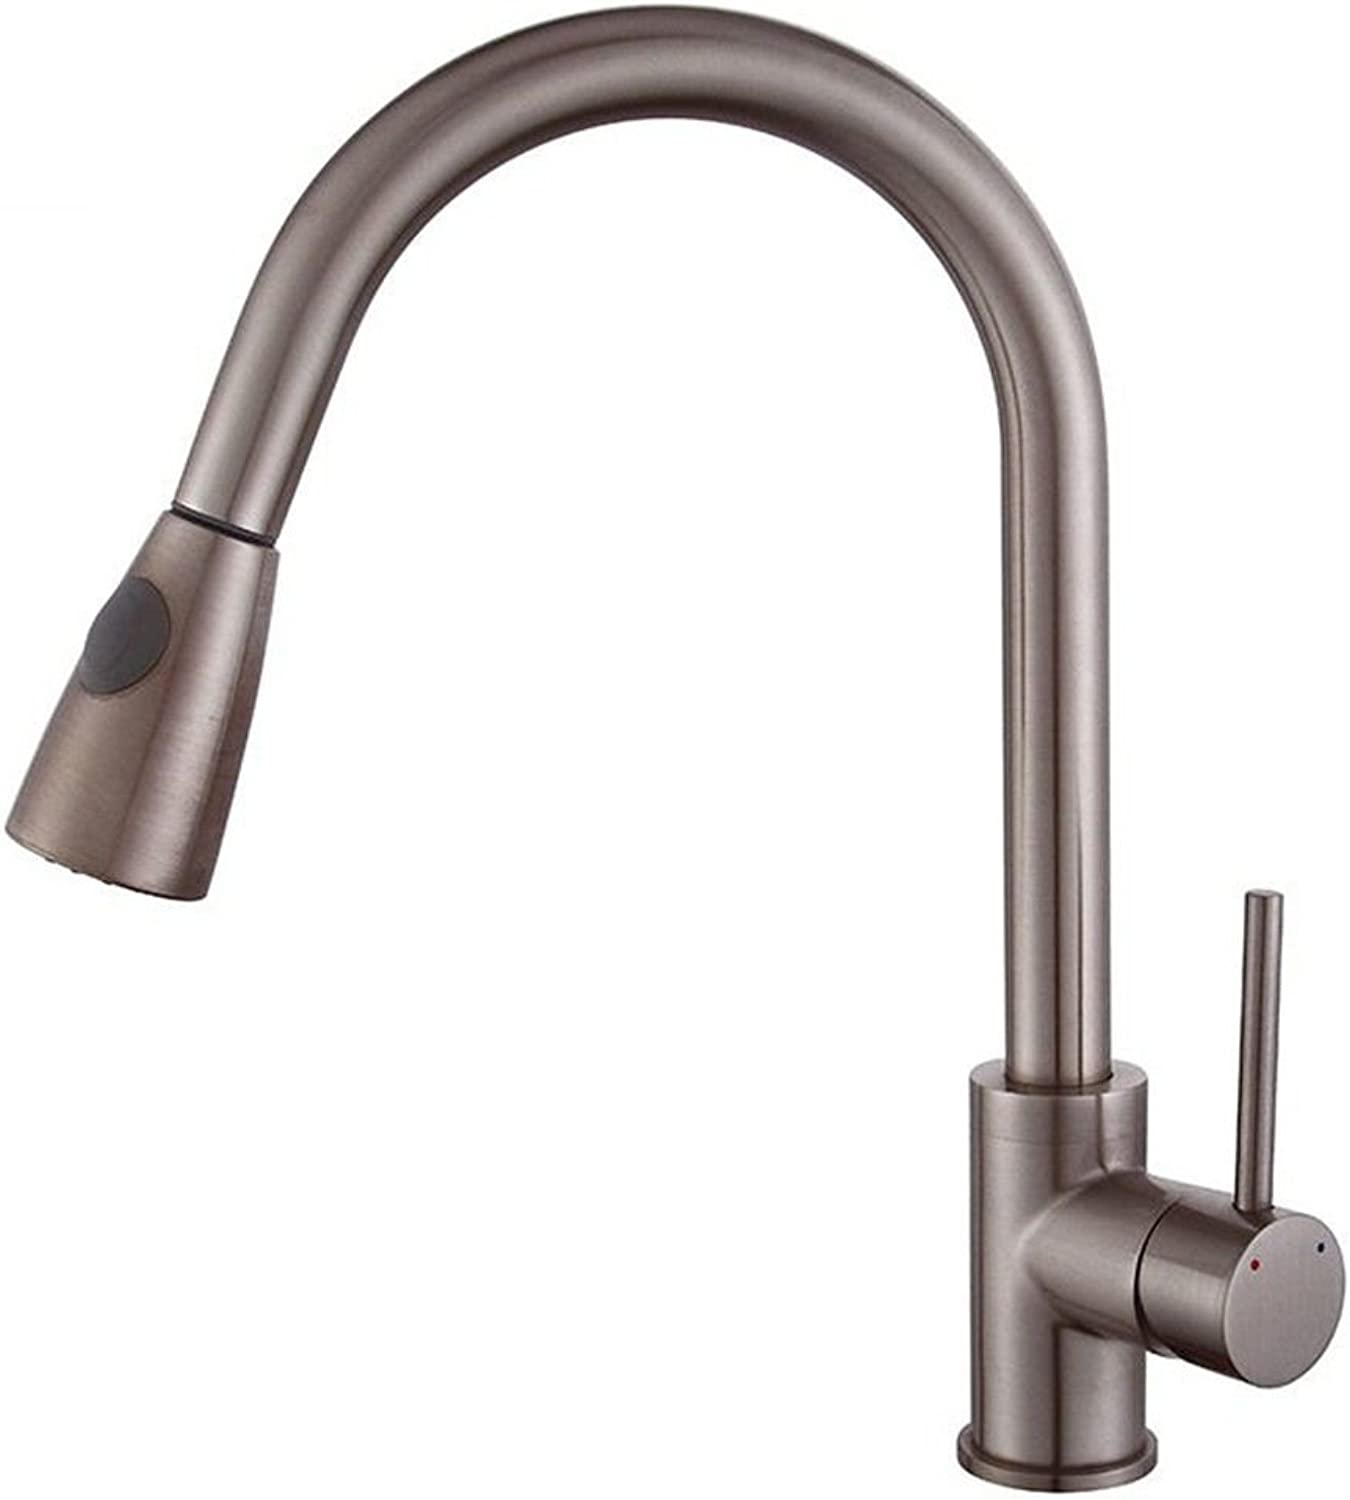 AQMMi Basin Taps Bathroom Sink Faucet Brass Hot and Cold Water Brushed redatable Pull Out Bathroom Sink Faucet Basin Mixer Tap